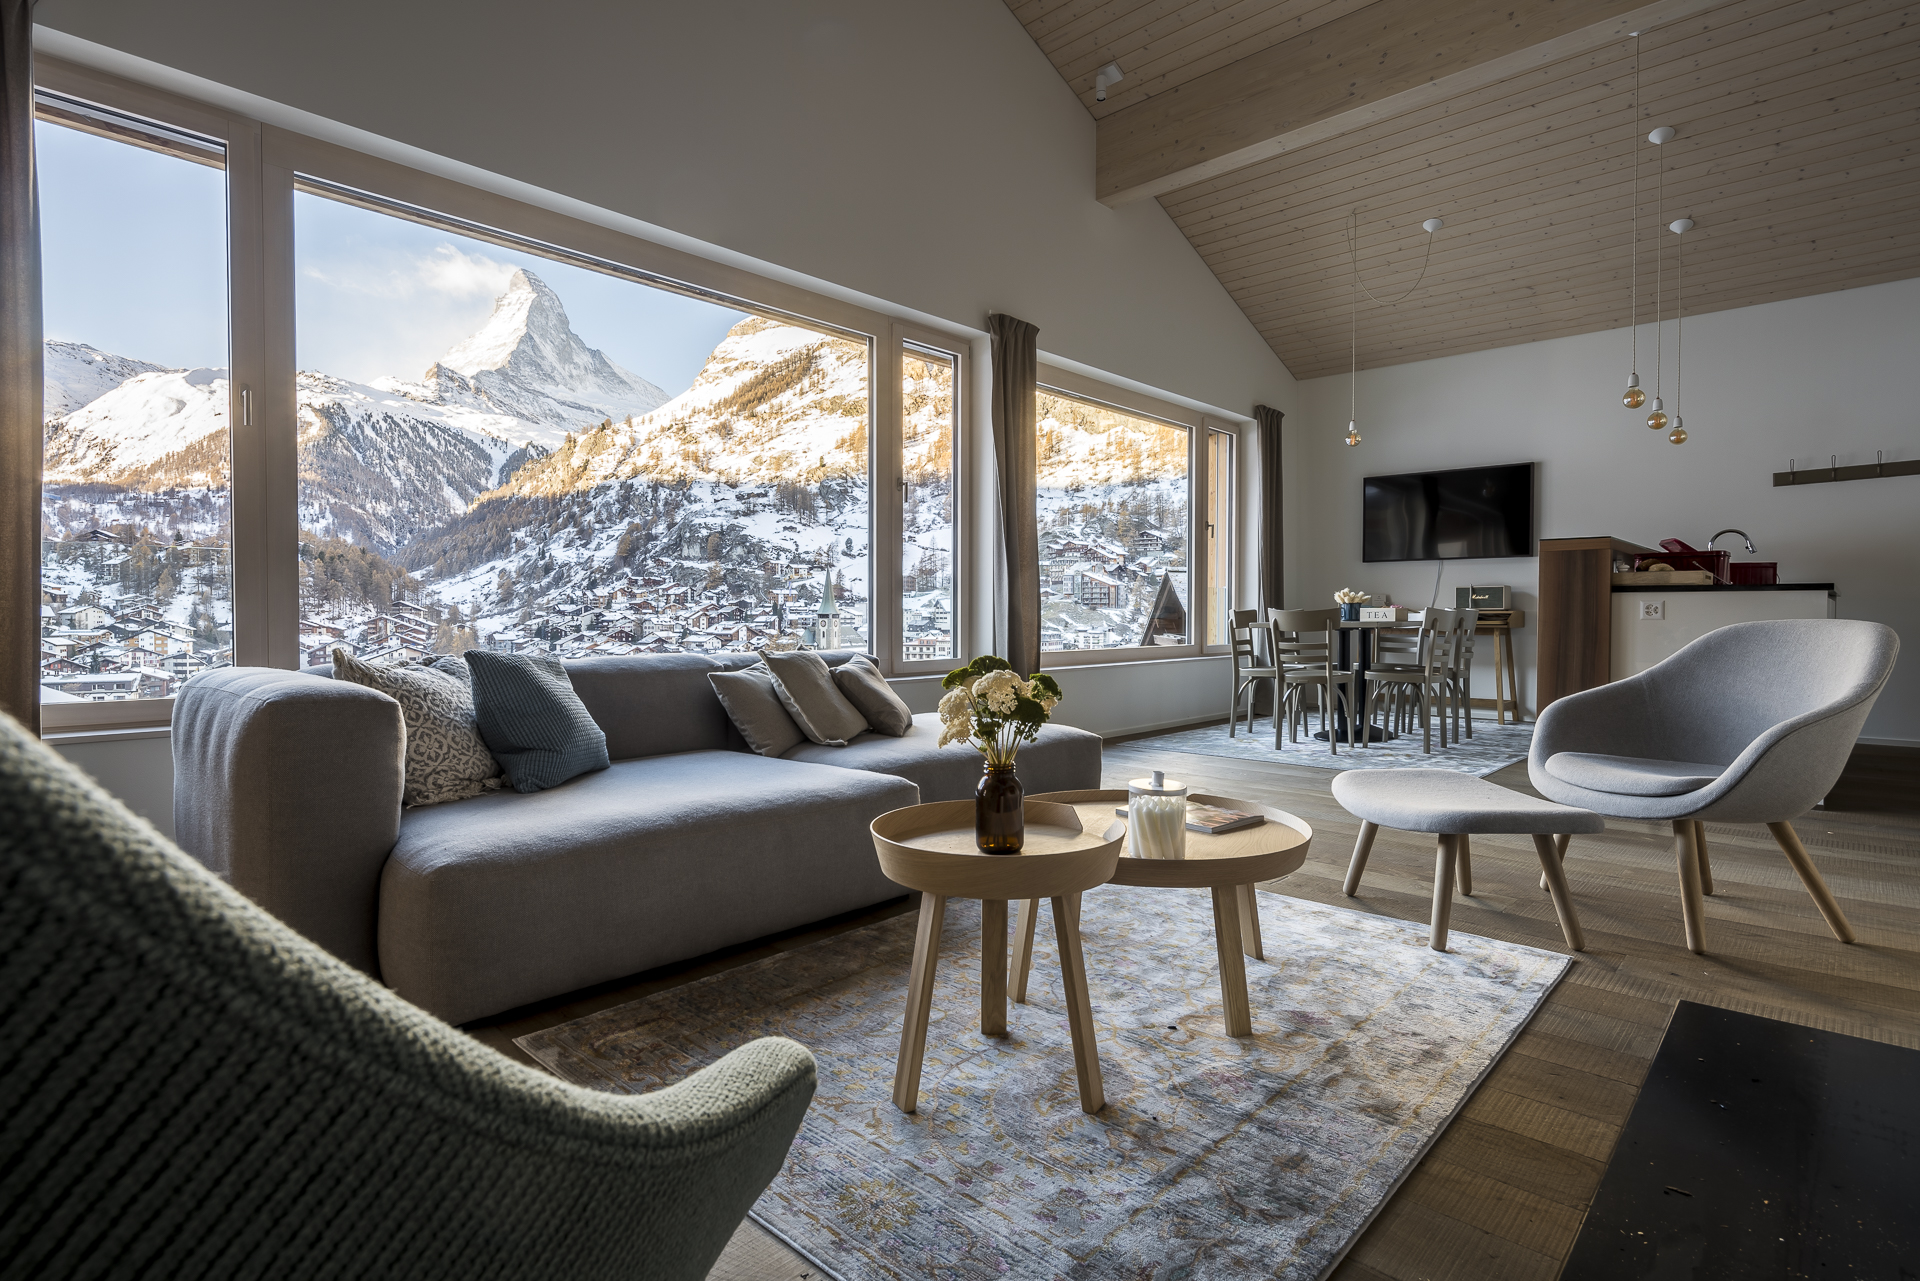 Overlook Lodge Apartment in Zermatt